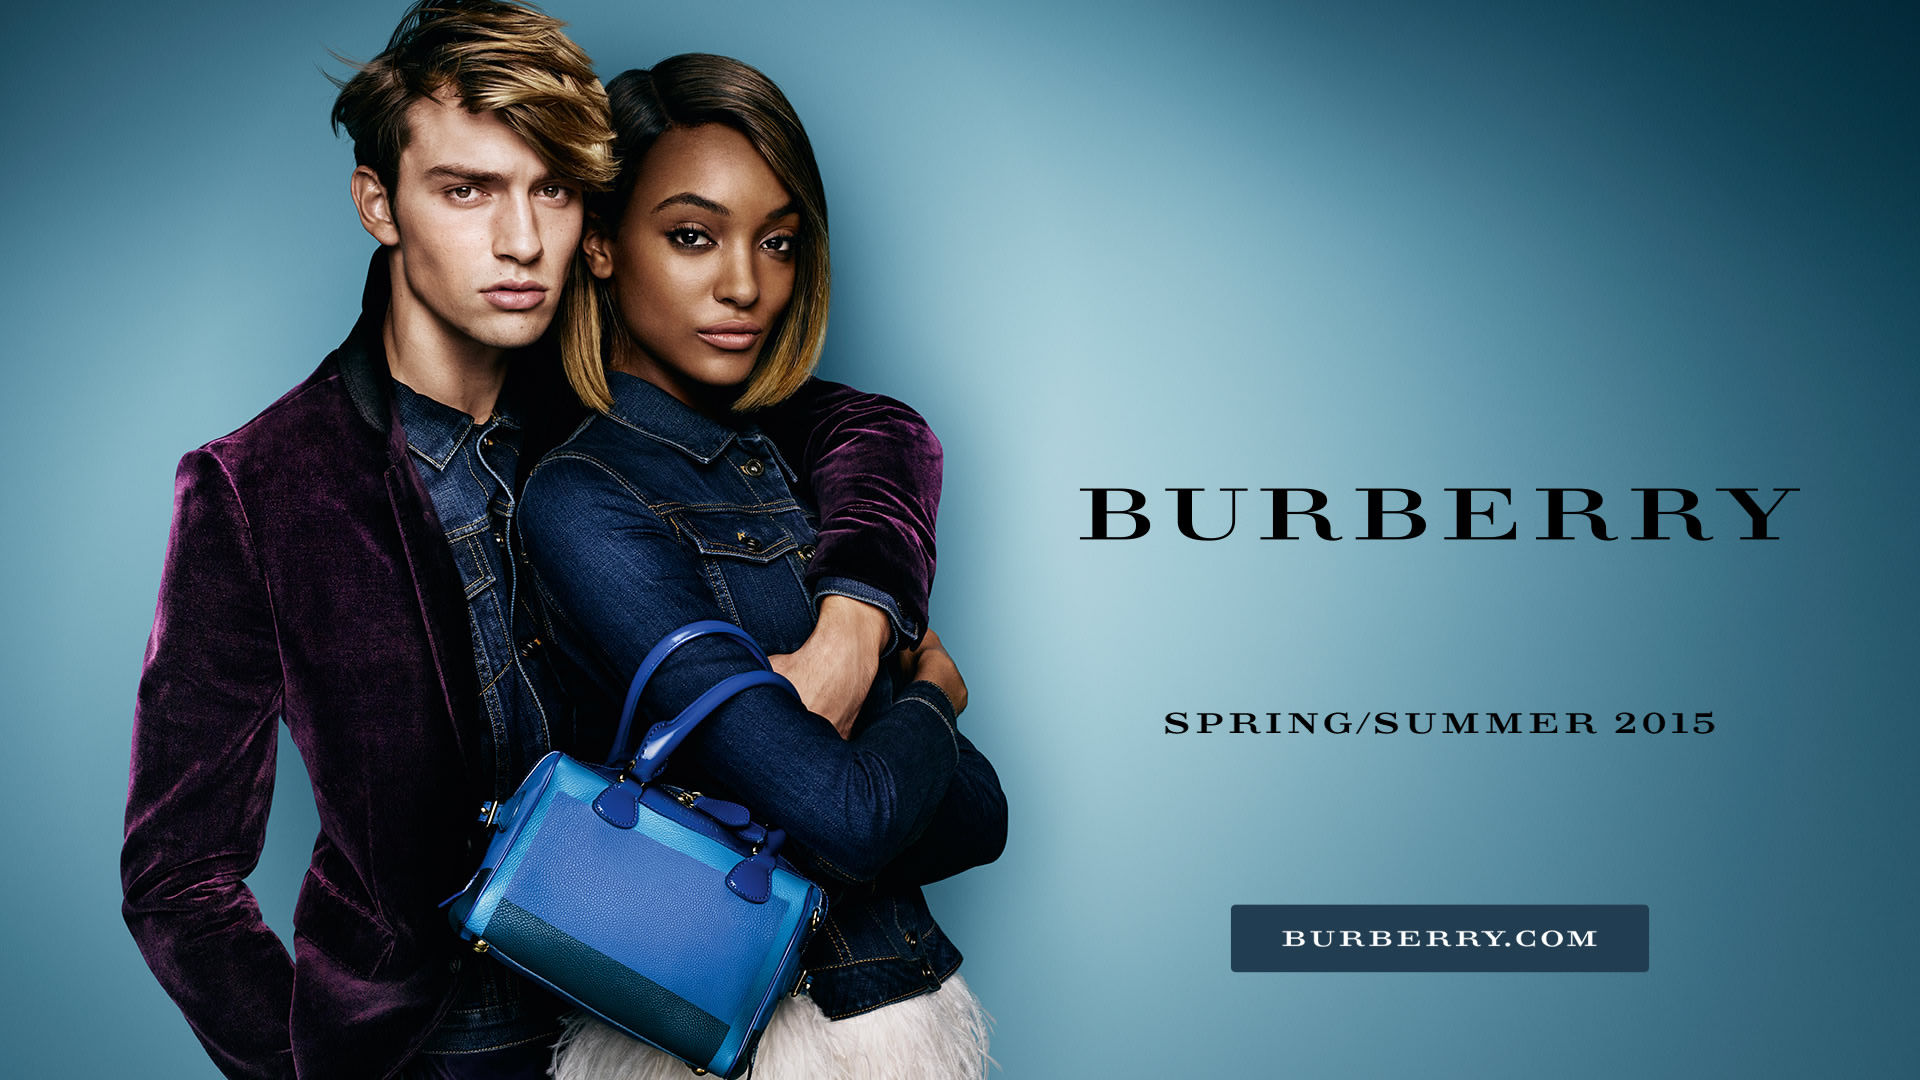 Burberry main campaign tablet ad